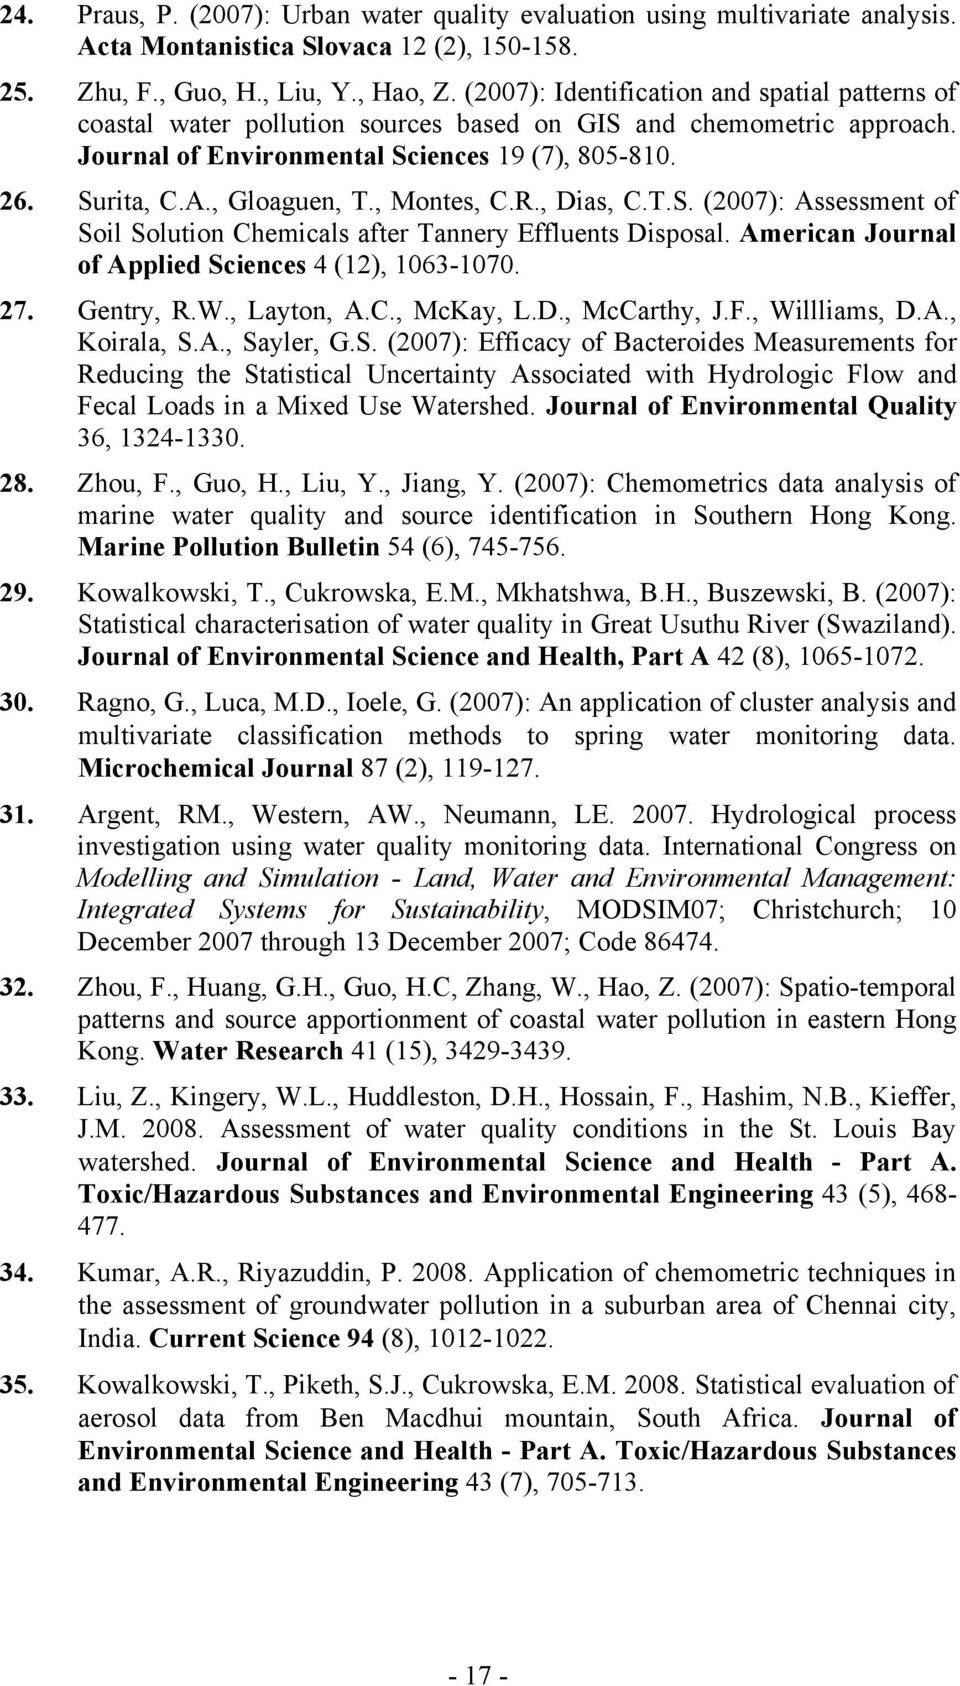 , Montes, C.R., Dias, C.T.S. (2007): Assessment of Soil Solution Chemicals after Tannery Effluents Disposal. American Journal of Applied Sciences 4 (12), 1063-1070. 27. Gentry, R.W., Layton, A.C., McKay, L.